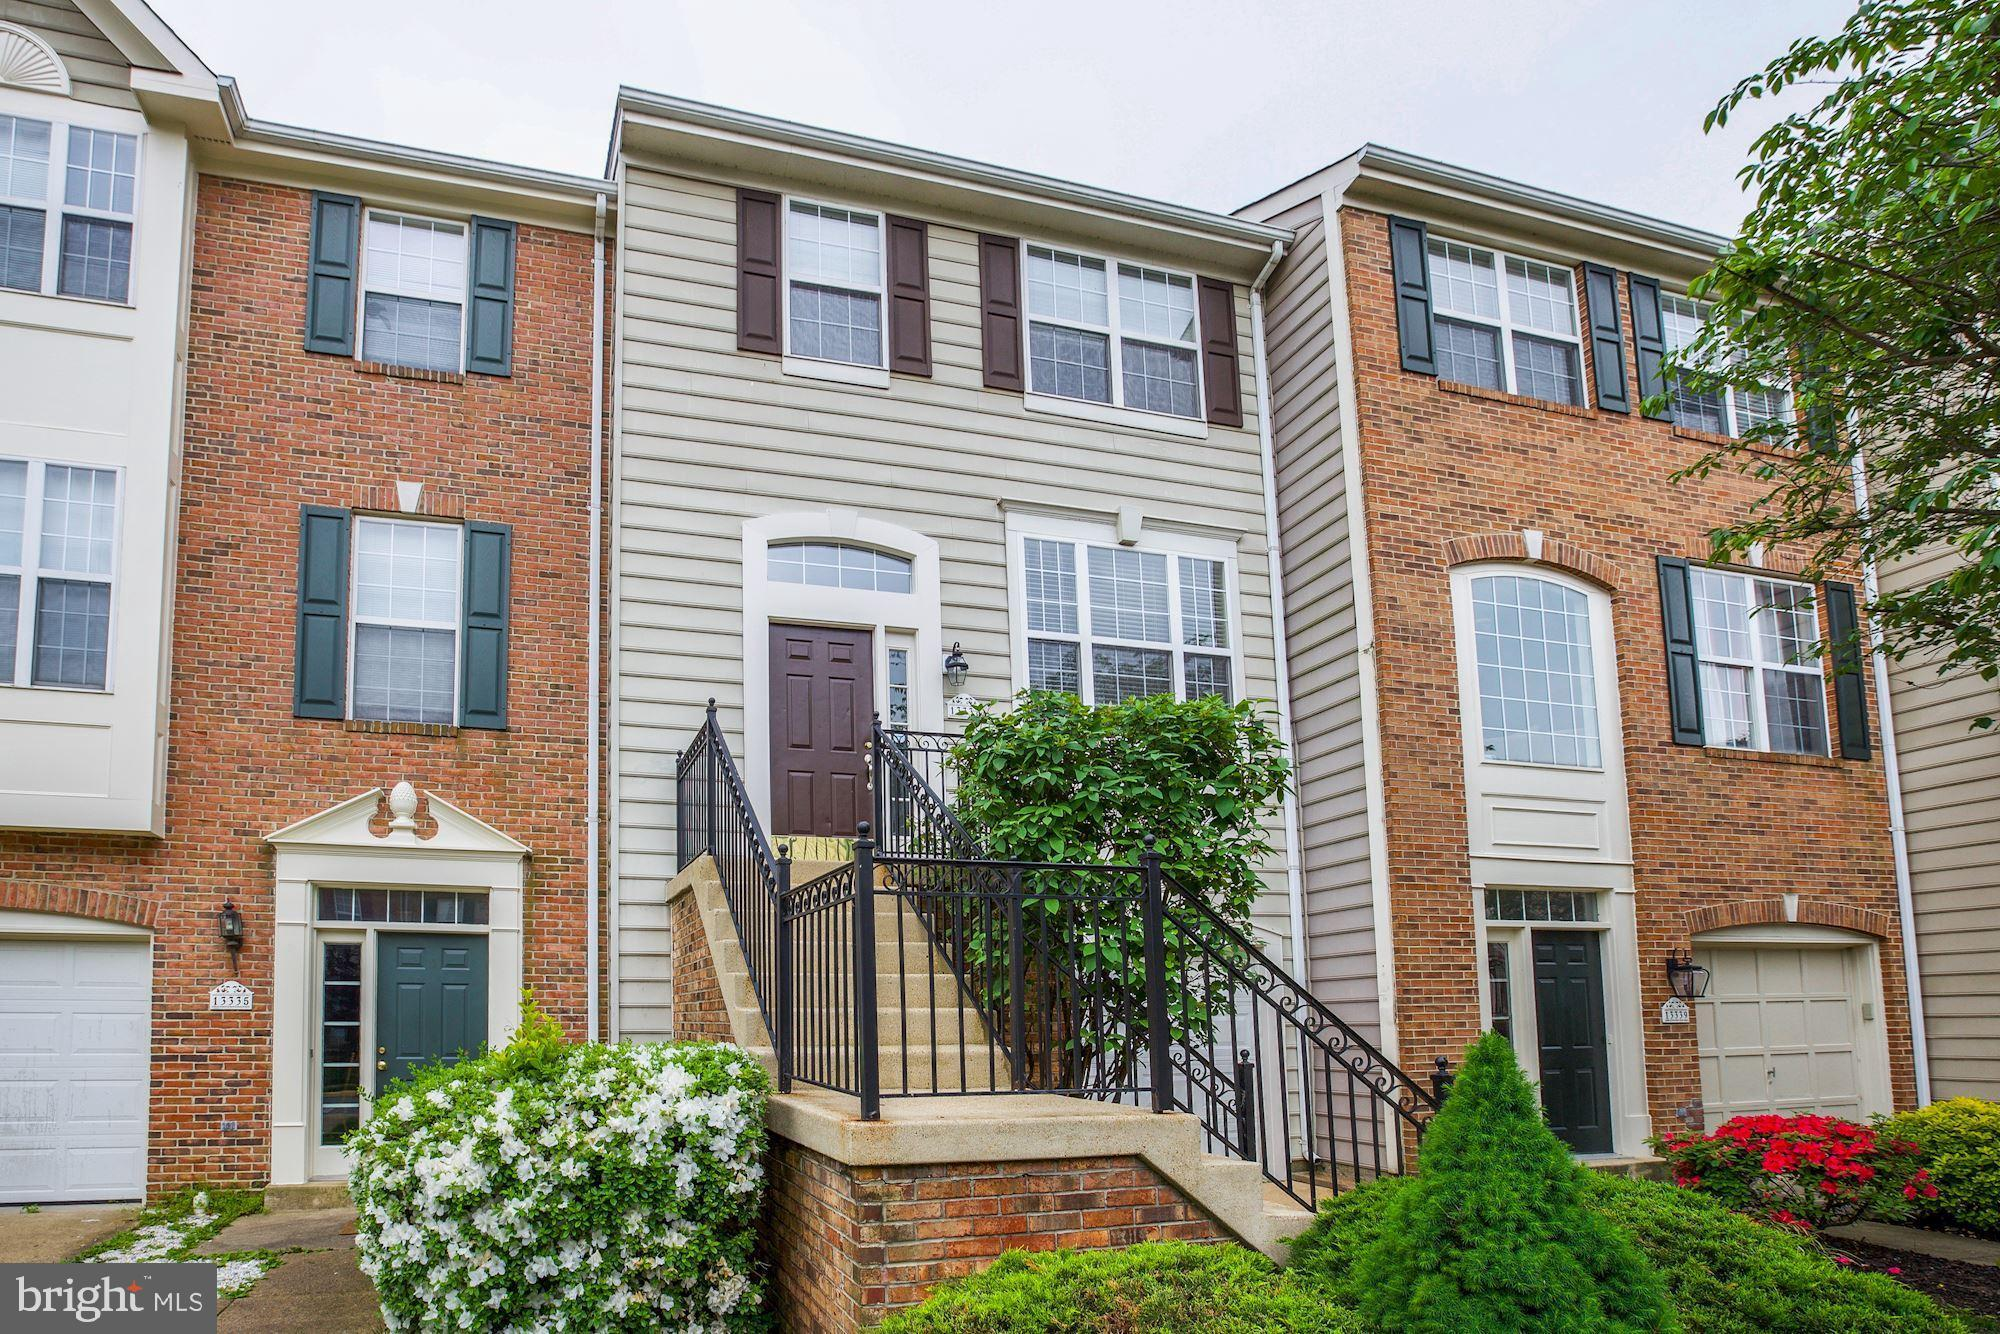 DON'T RENEW that lease! Come and live on the Occoquan River in this move-in ready townhome in sought after Belmont Bay! Easy-peasy commute with the VRE a stone's throw away makes getting to the Pentagon or DC relaxing. Ideal for Ft Belvoir and Quantico commuters too. This home is clean, bright, and open! Ready for you with all new flooring on all three levels, wood in foyer, kitchen, and family room!  Spacious rooms welcome your comfortable furniture. Family room off kitchen with gas fireplace, and entertainment center rough-in.  Kitchen has new granite countertops, new faucet, and new refrigerator.  Sliding glass door to the oversized deck is the perfect spot for July 4 grilling! Master bedroom has walk-in closet, luxury bath with separate soaking tub, separate shower, and double vanity sink. Finished lower level has oversized rec room, laundry room with full sized washer and dryer that convey.  Walkout to fenced in back yard.  What a beautiful community, what a beautiful home.! Make Belmont Bay home today!